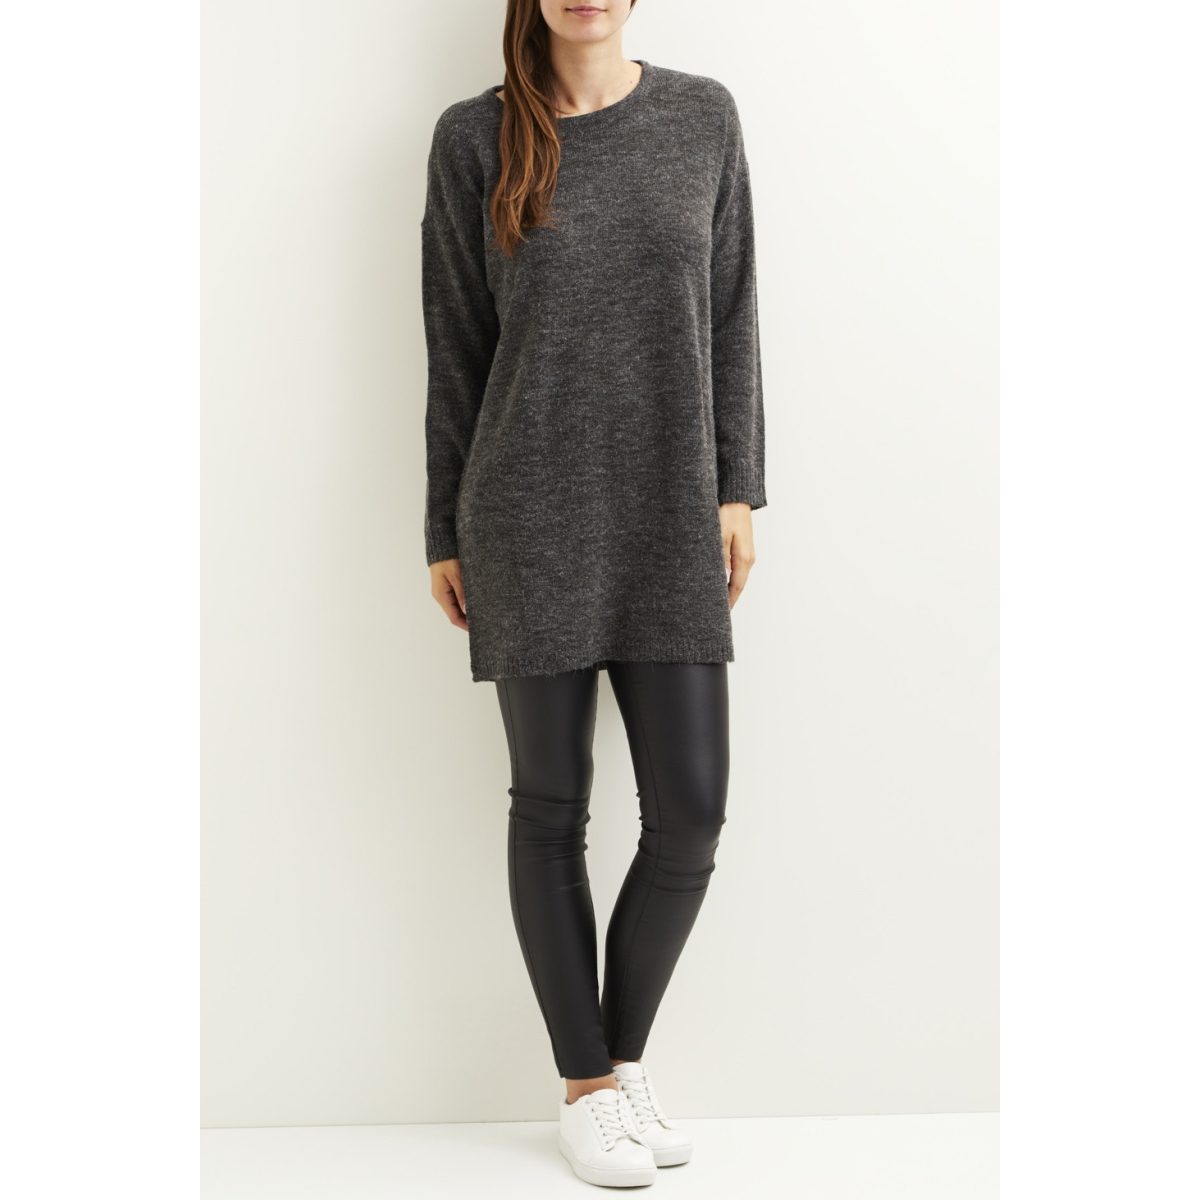 viriva l/s knit dress-noos 14029147 vila jurk dark grey melange